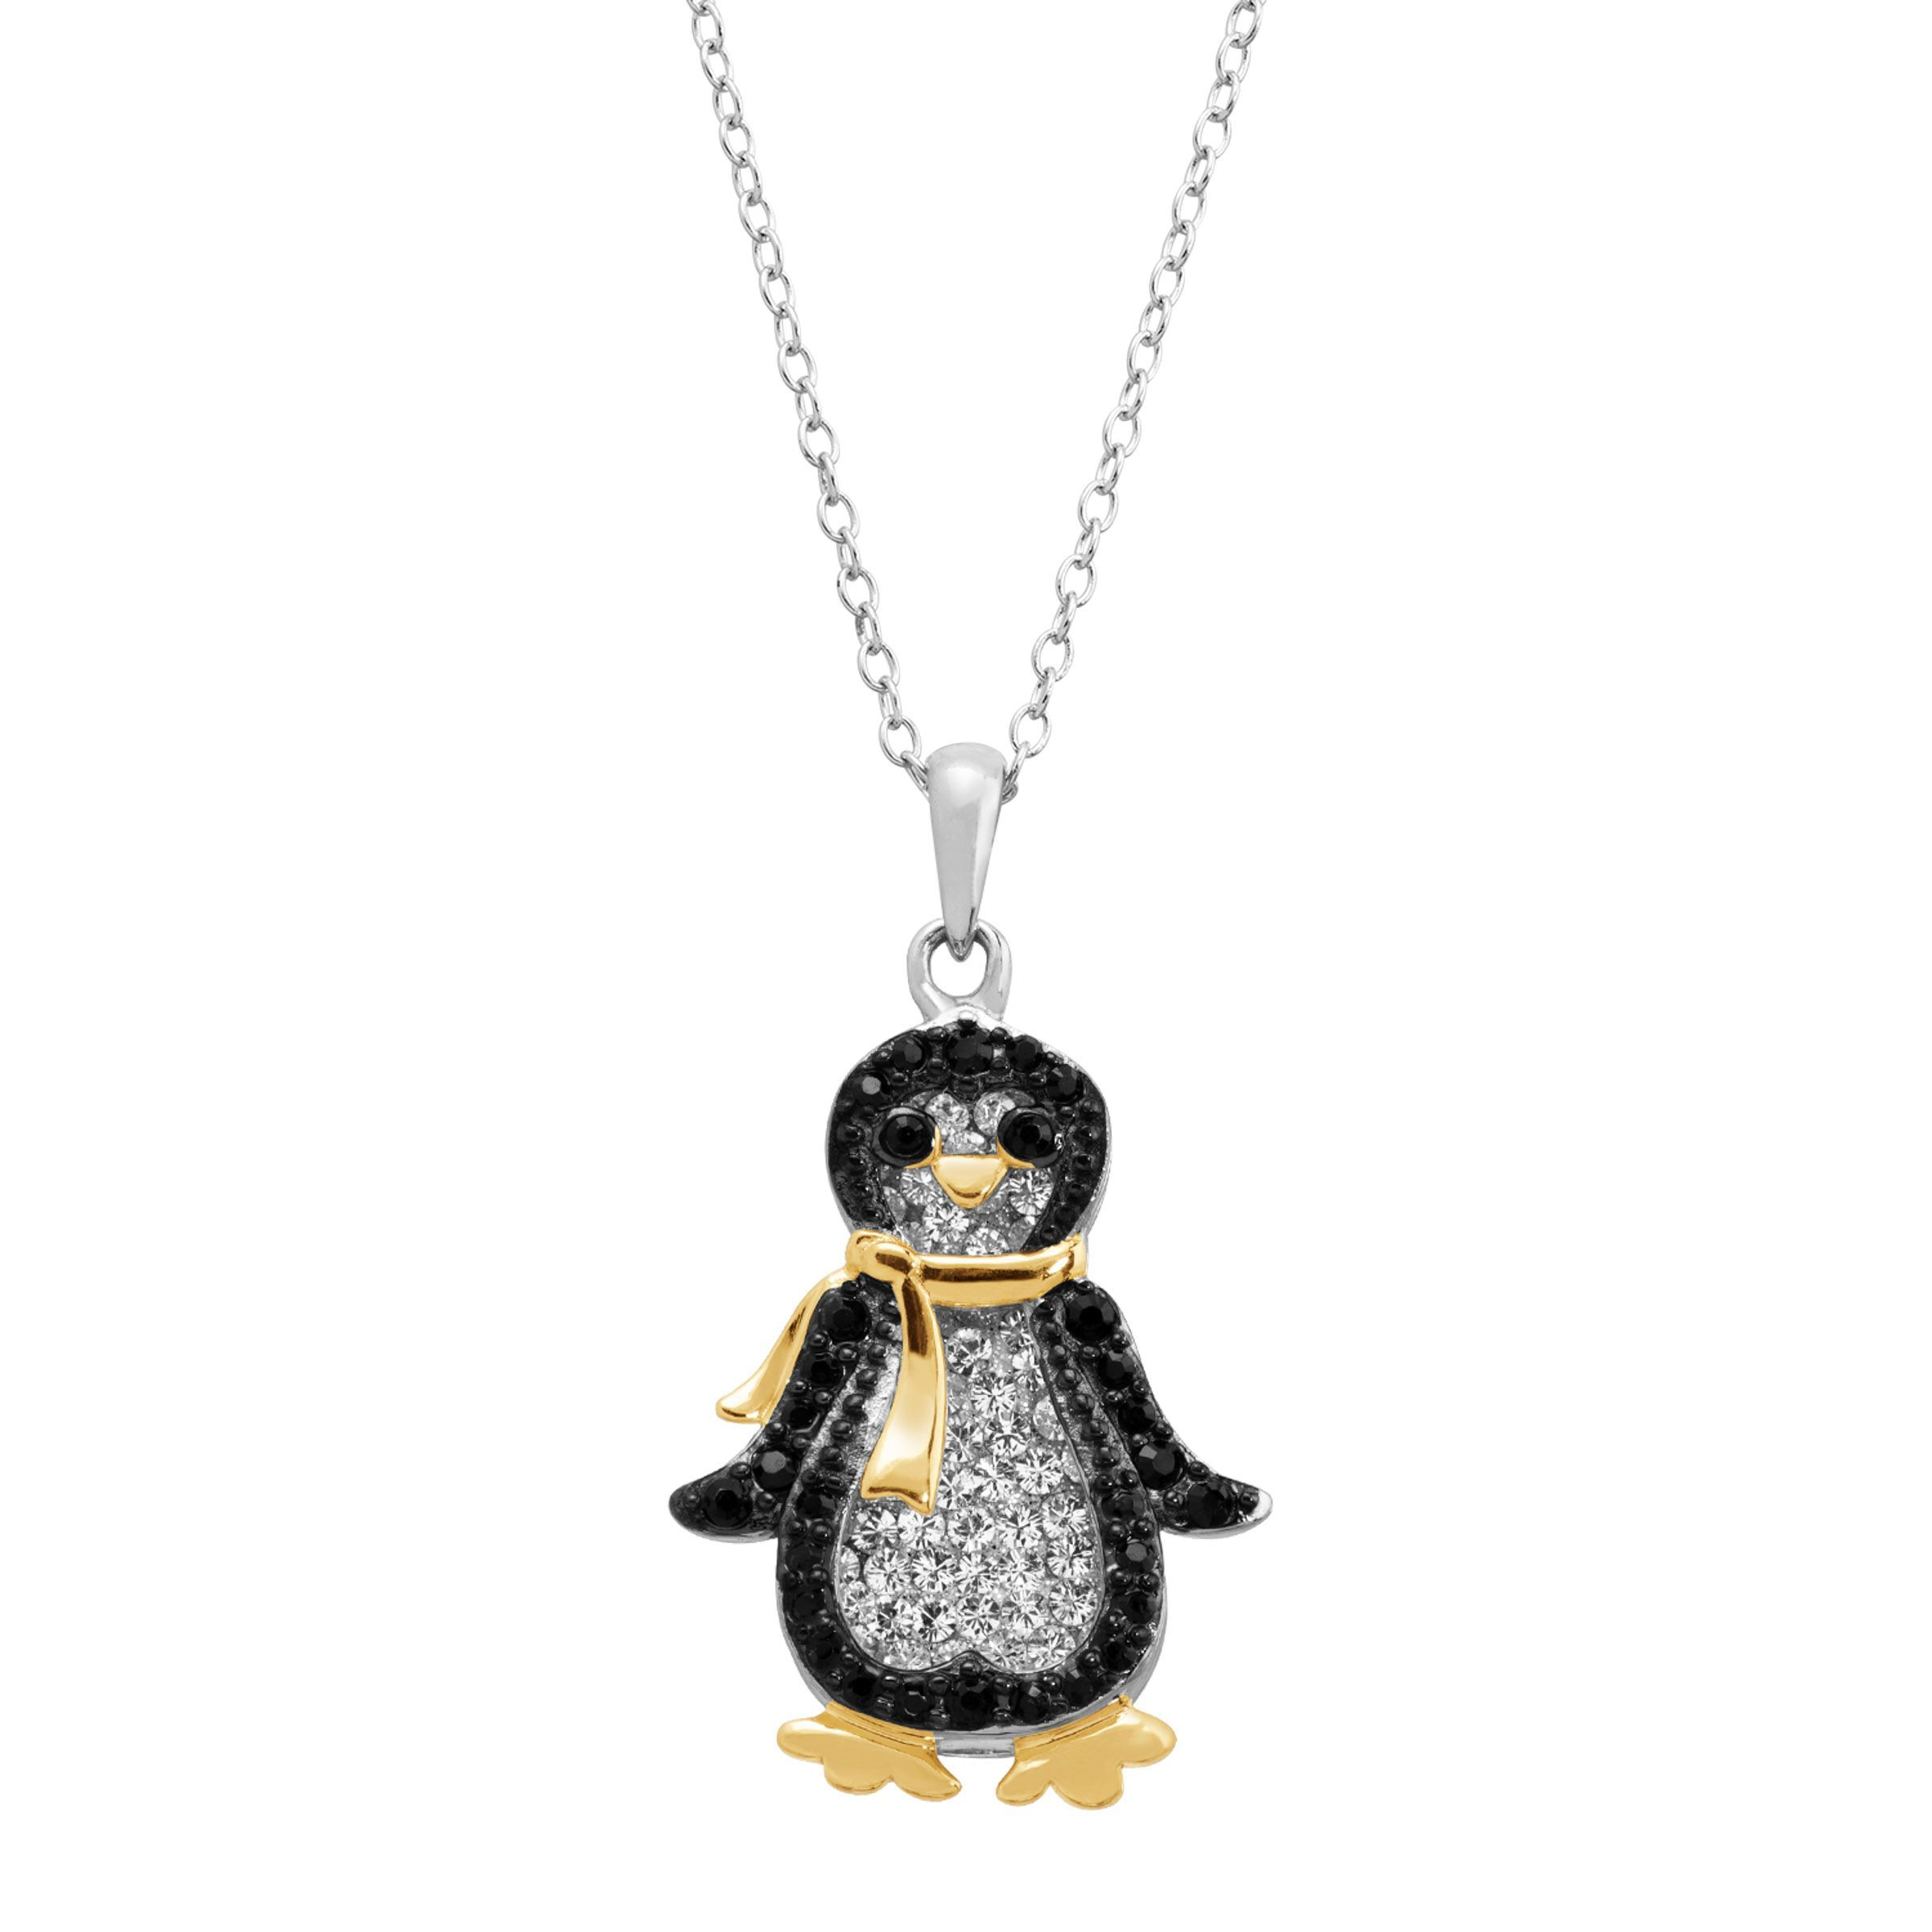 Penguin Pendant With Swarovski Crystals In 18k Gold Plated Sterling Silver